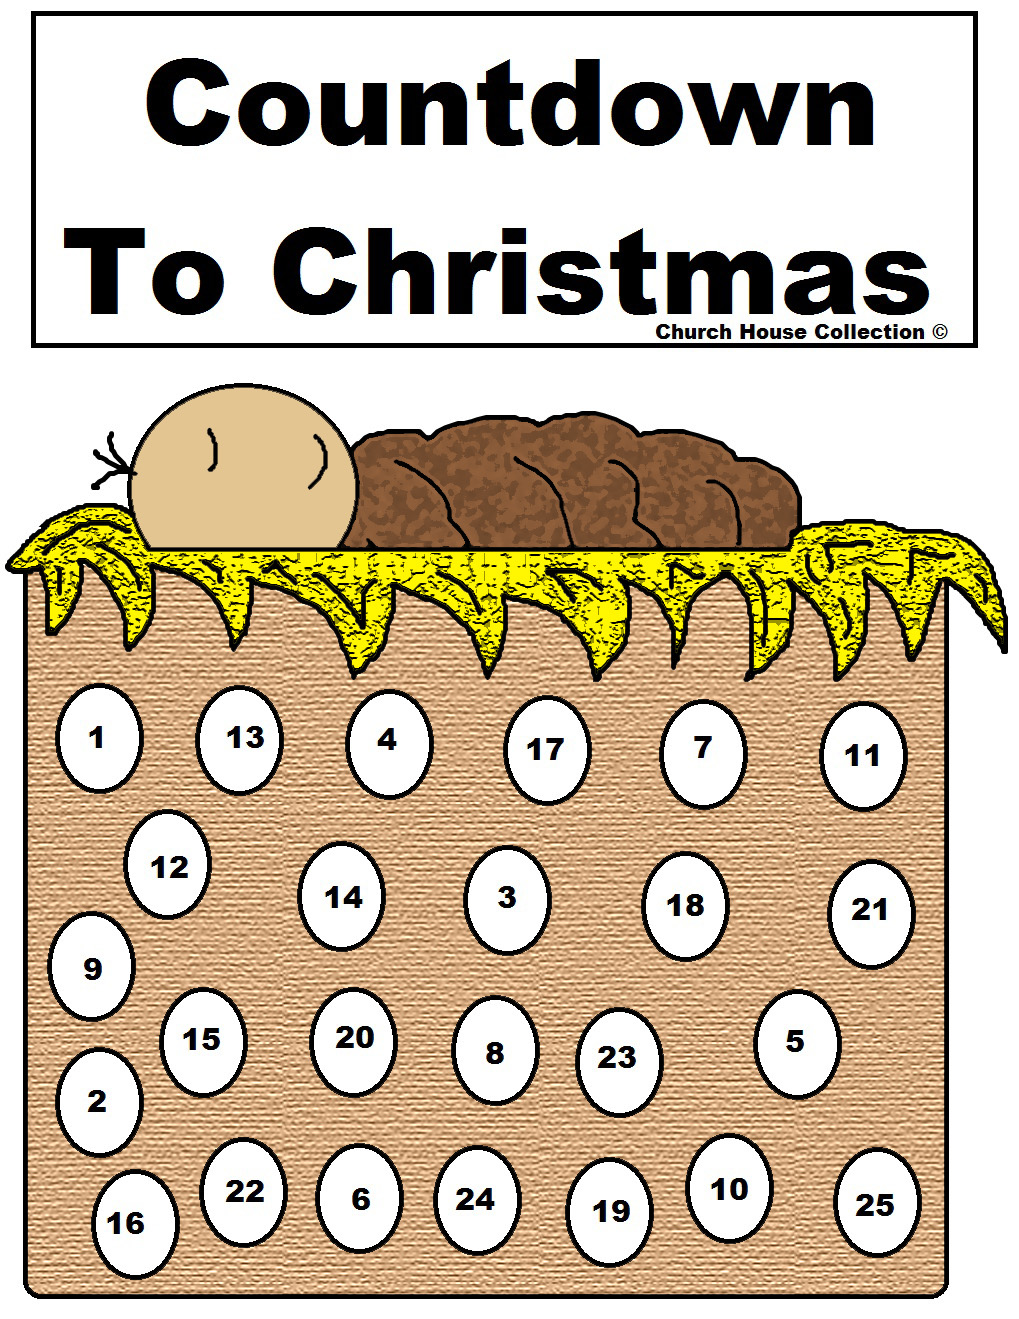 Church House Collection Blog: Baby Jesus Advent Calendar For Christmas